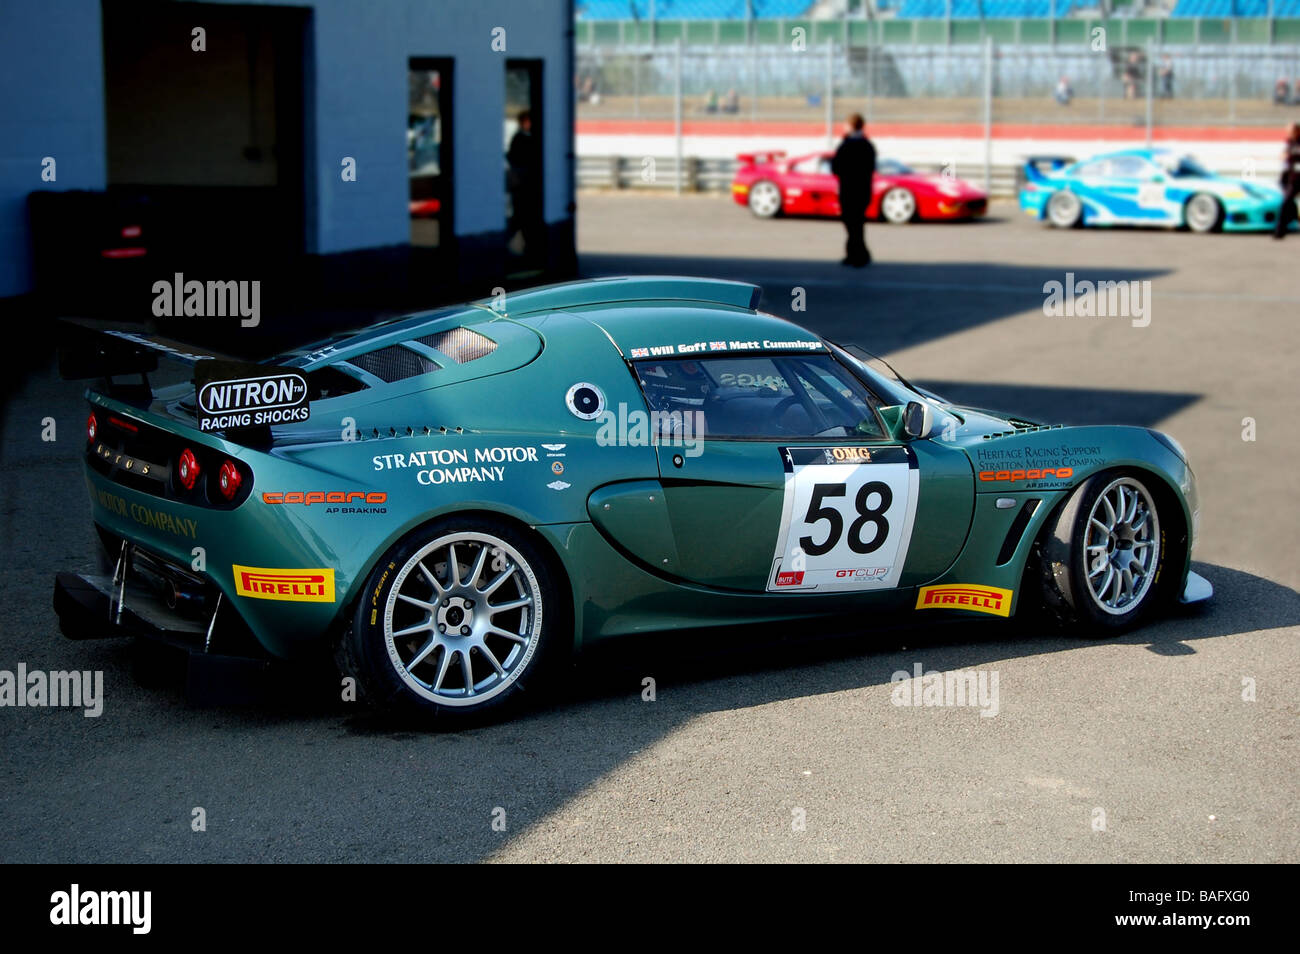 Lotus Exige Stock Photos & Lotus Exige Stock Images - Alamy